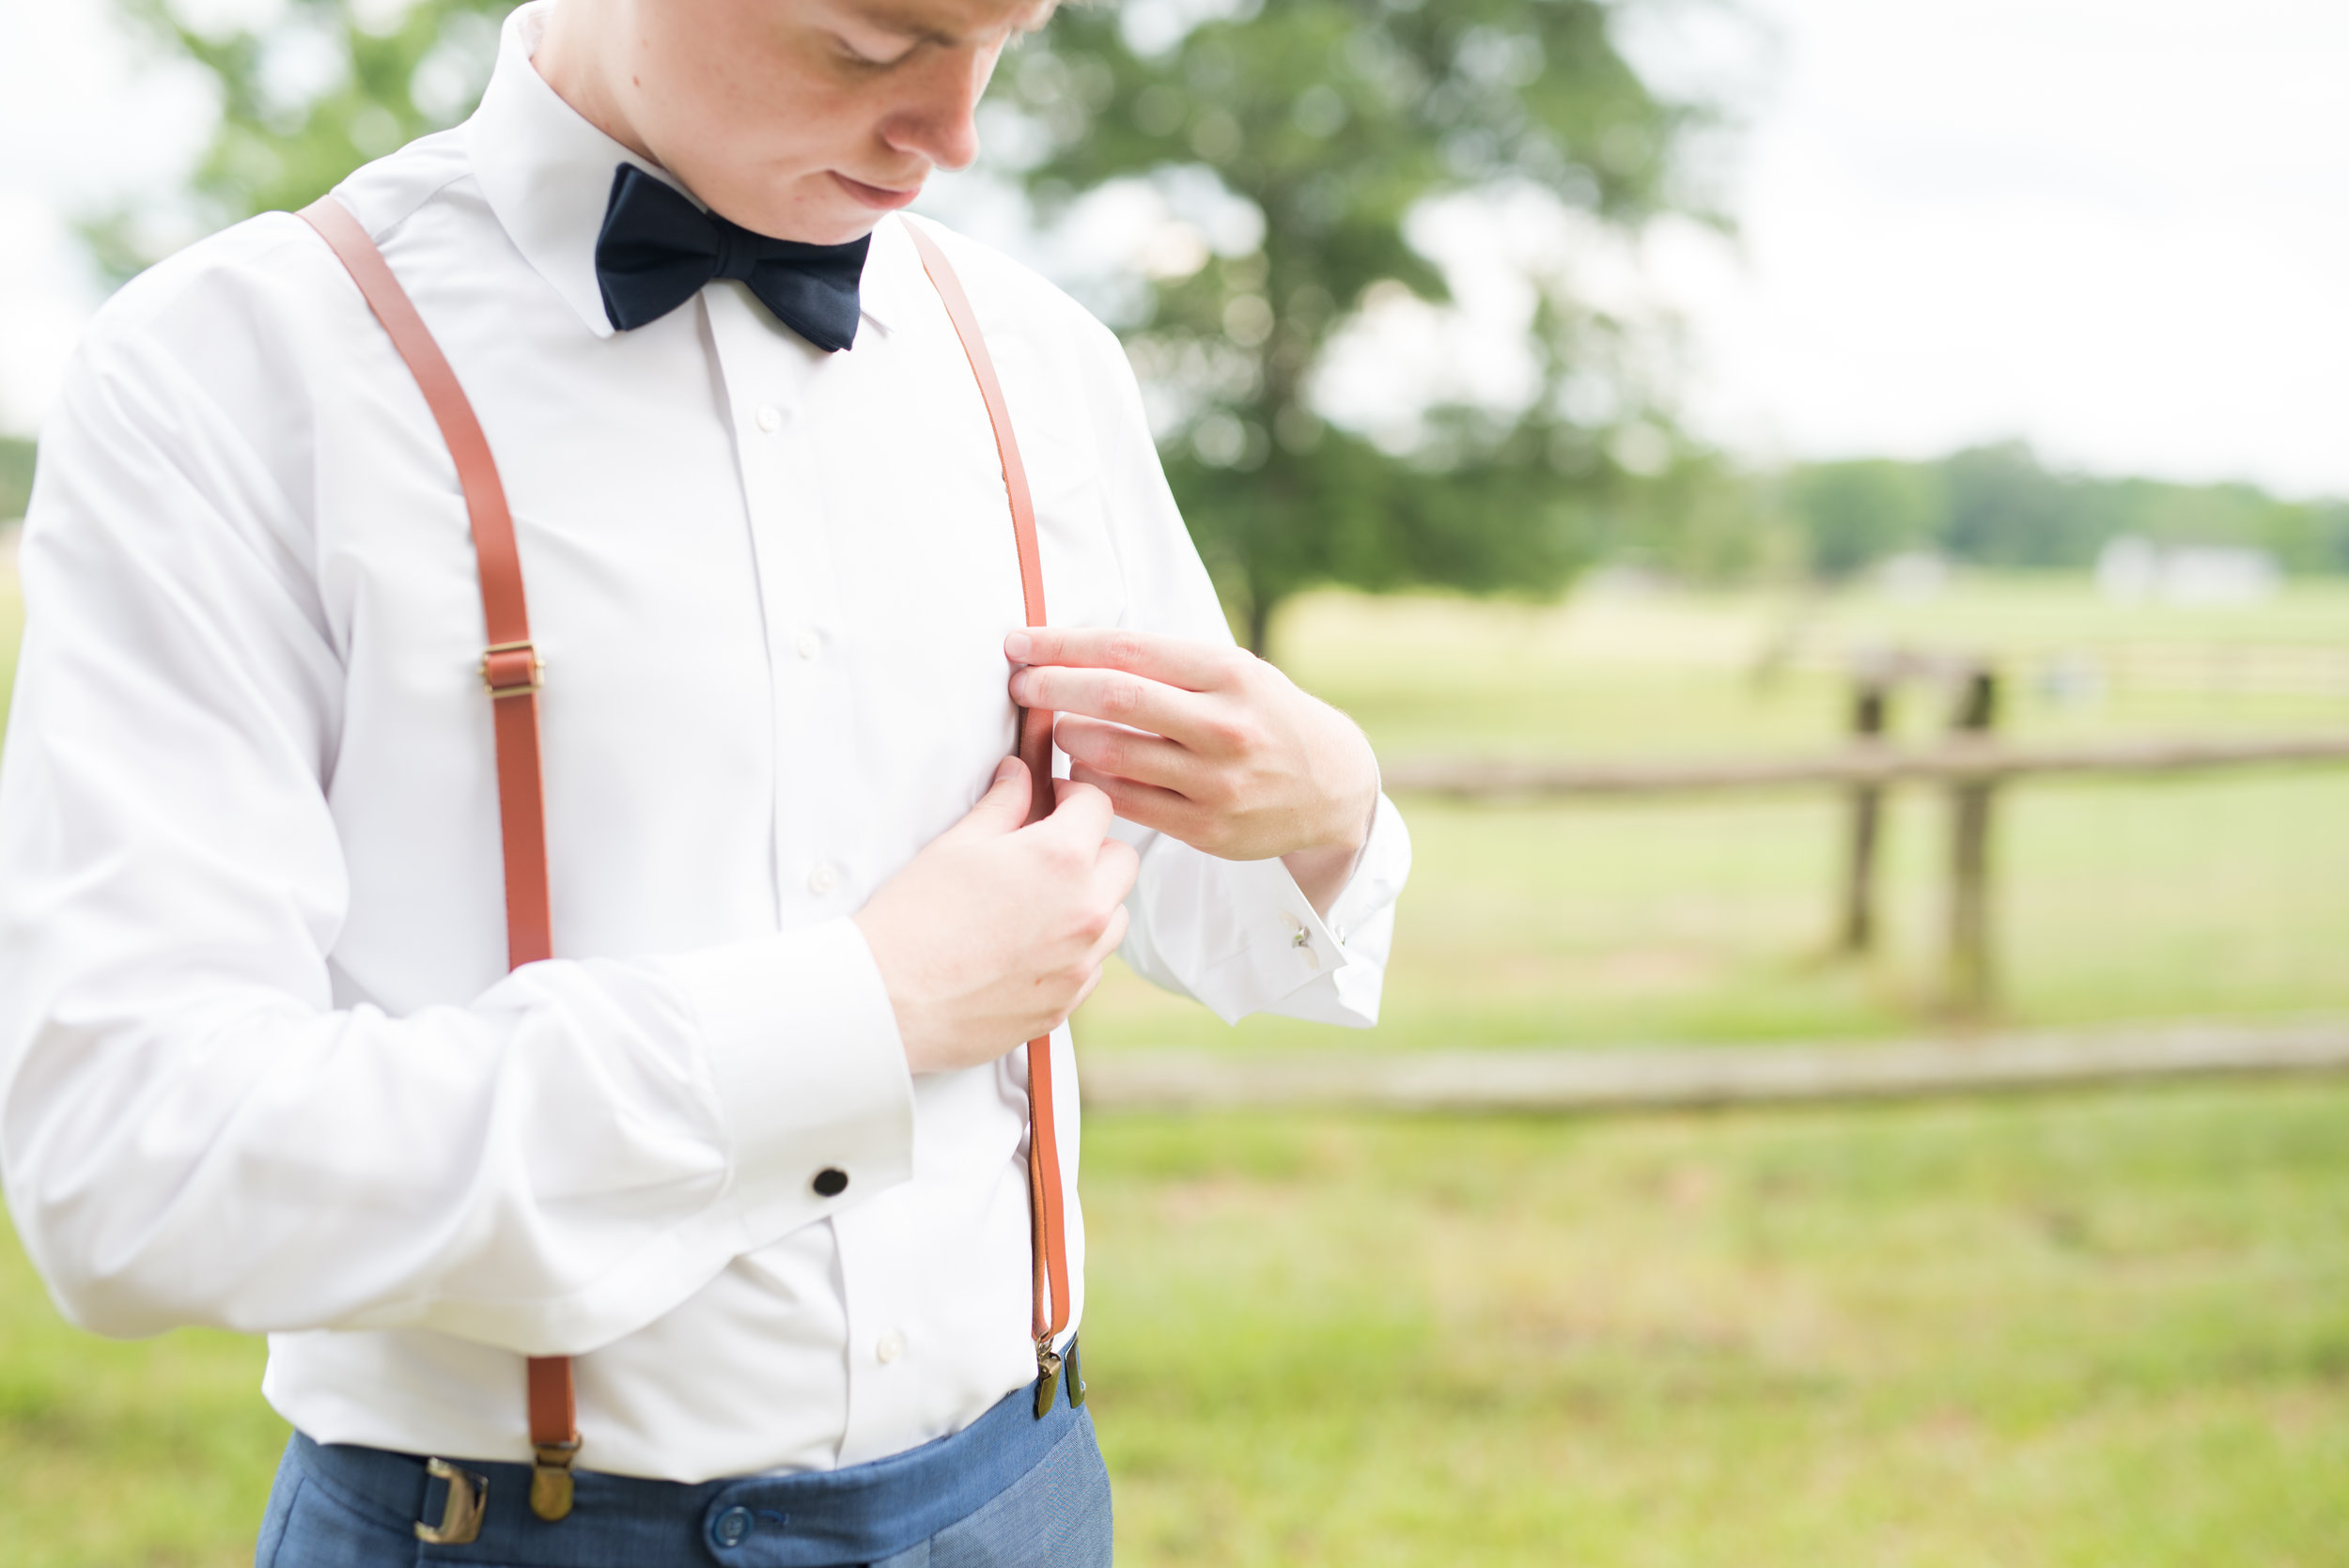 The Barn at Bridlewood wedding in Hattiesburg, Mississippi (MS) in June | the Groom getting ready for the wedding wearing suspenders and a bowtie